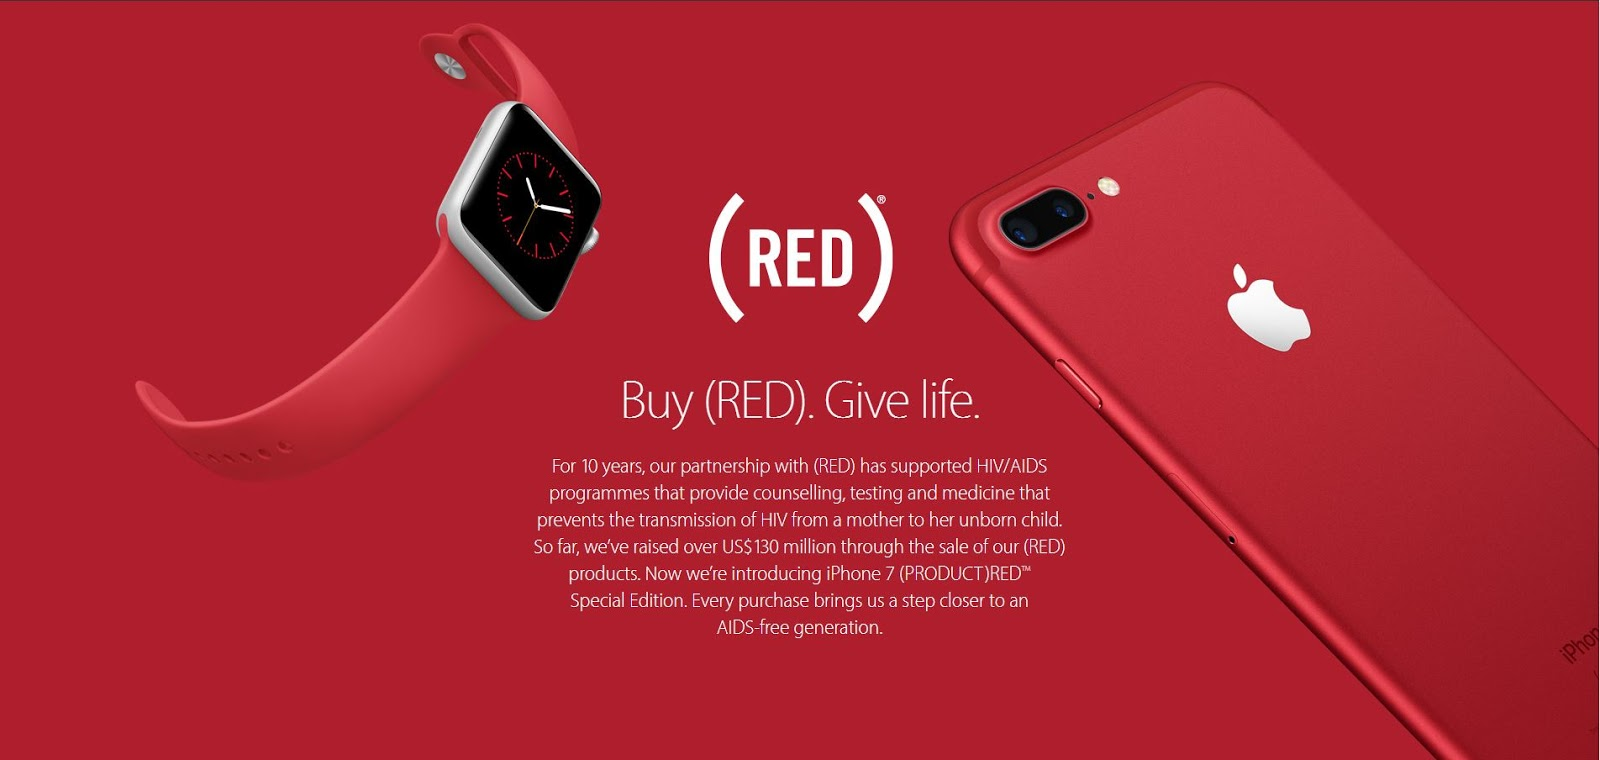 apple inc and product red marketing partnership Apple incorporated financial and business news, updates, and information from the new york times and other leading providers.